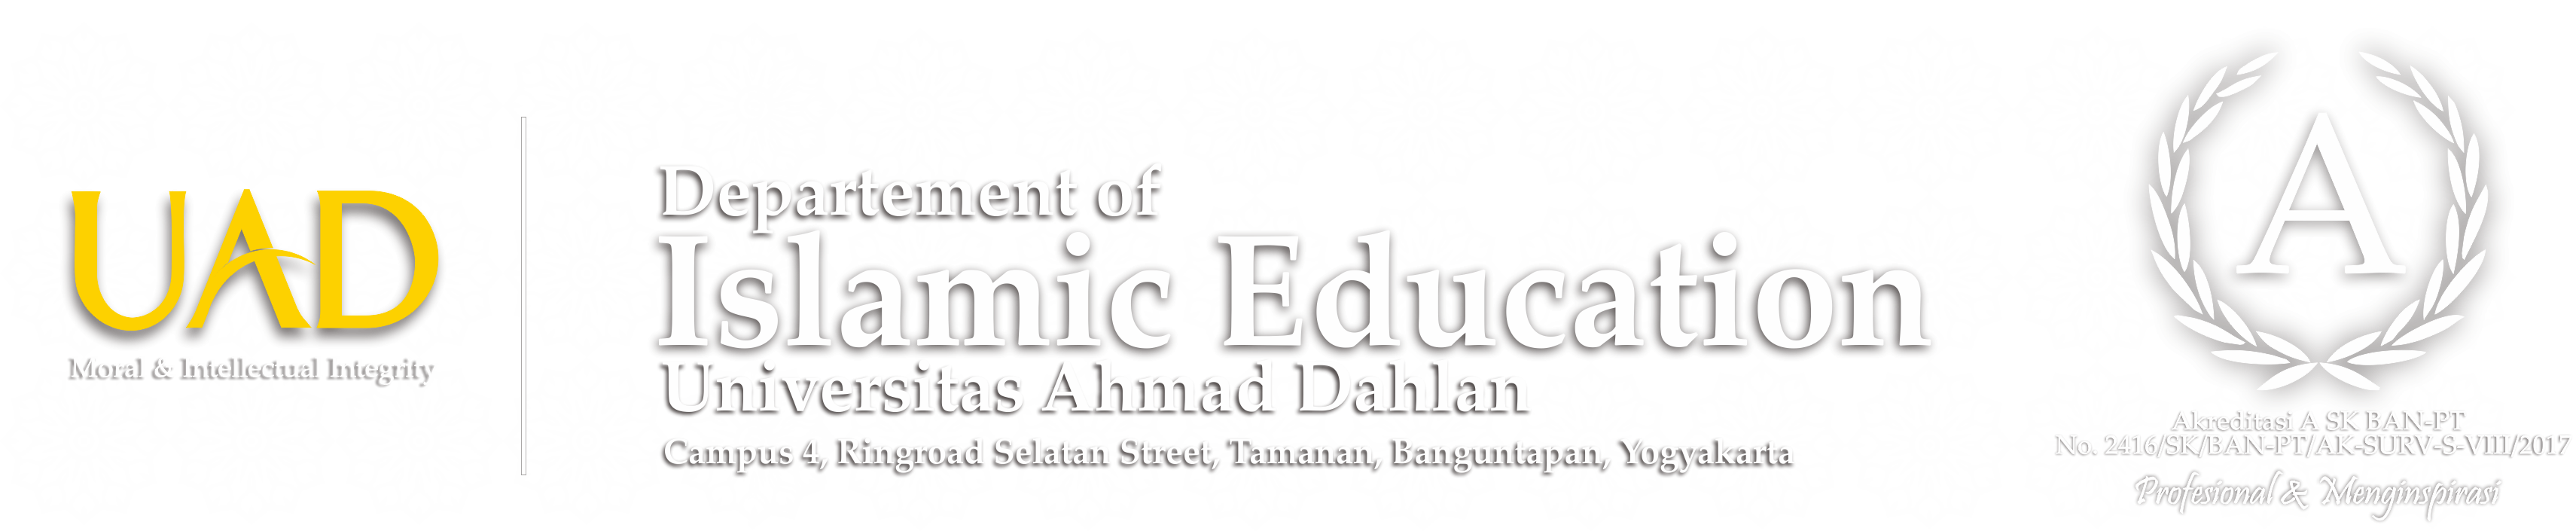 Departement of Islamic Education